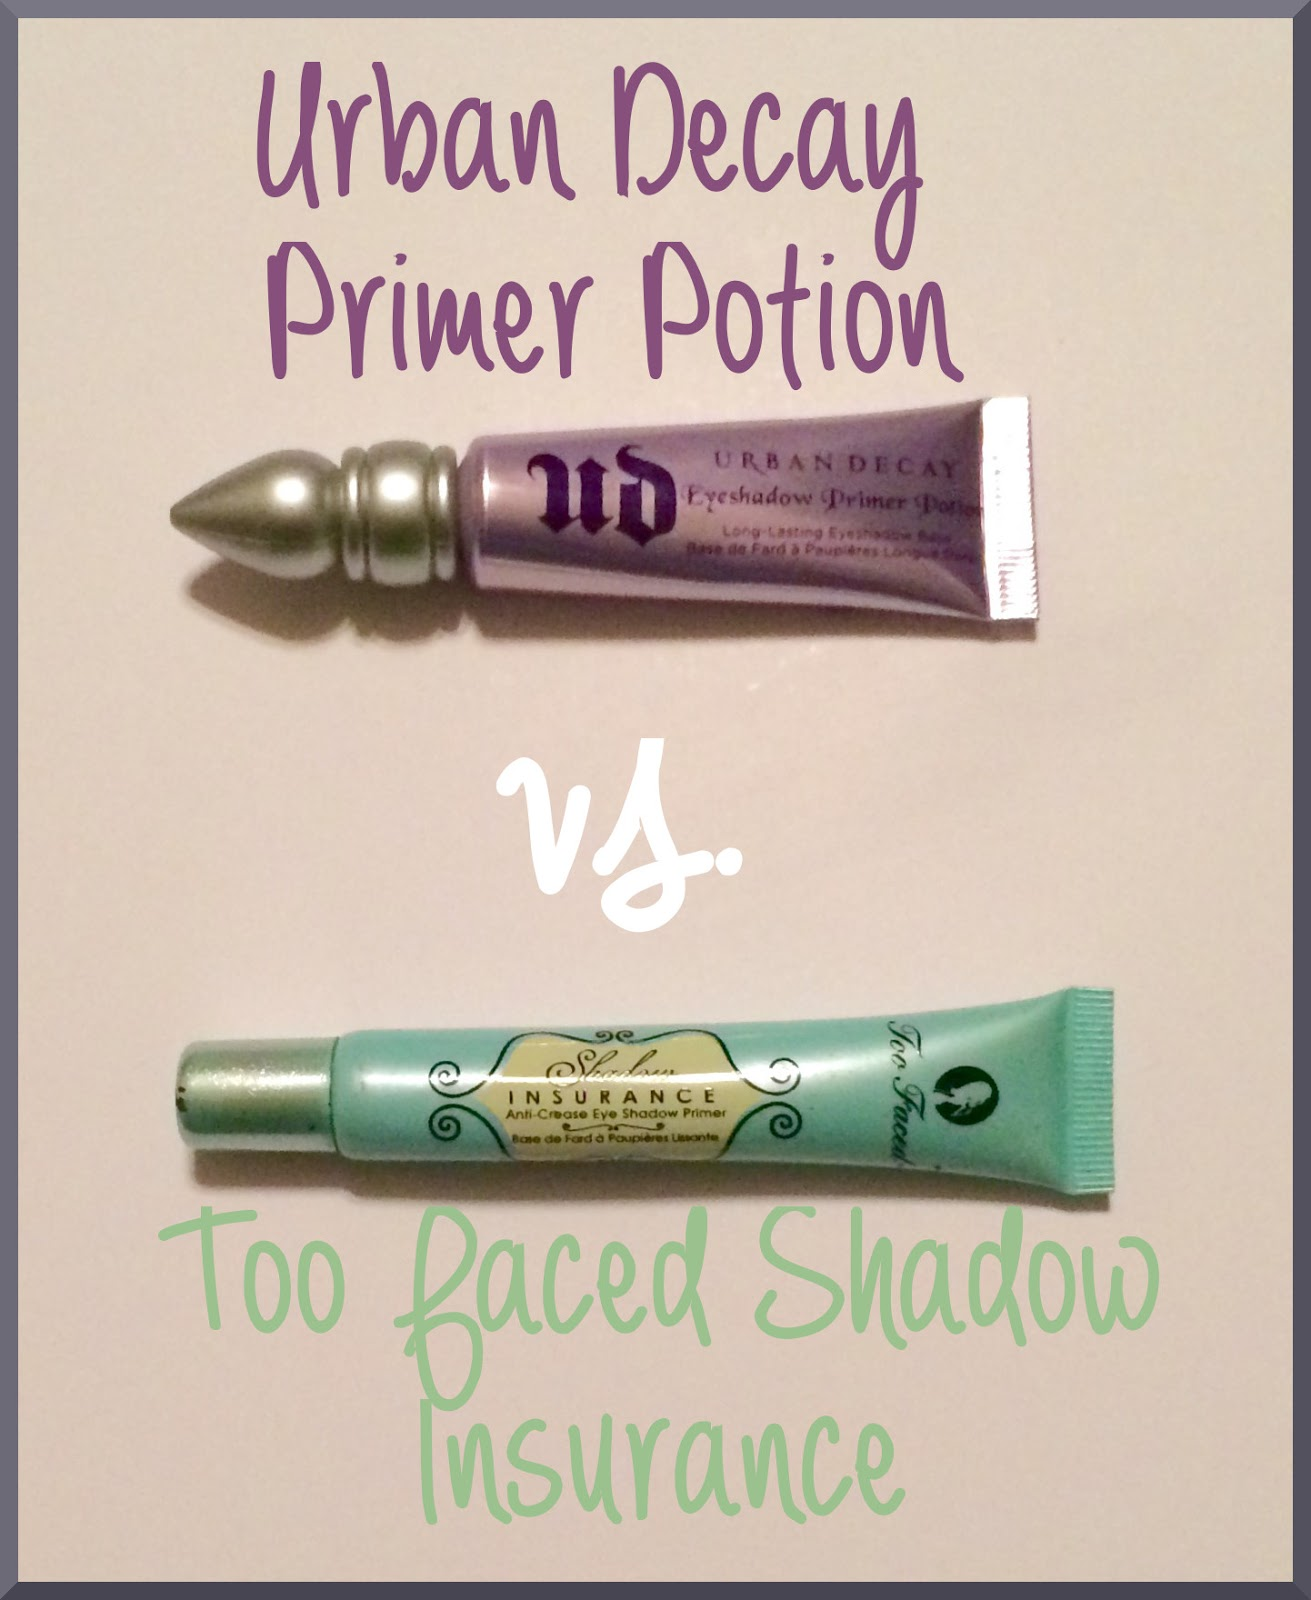 Eye shadow primer urban decay primer potion, too faced shadow insurance